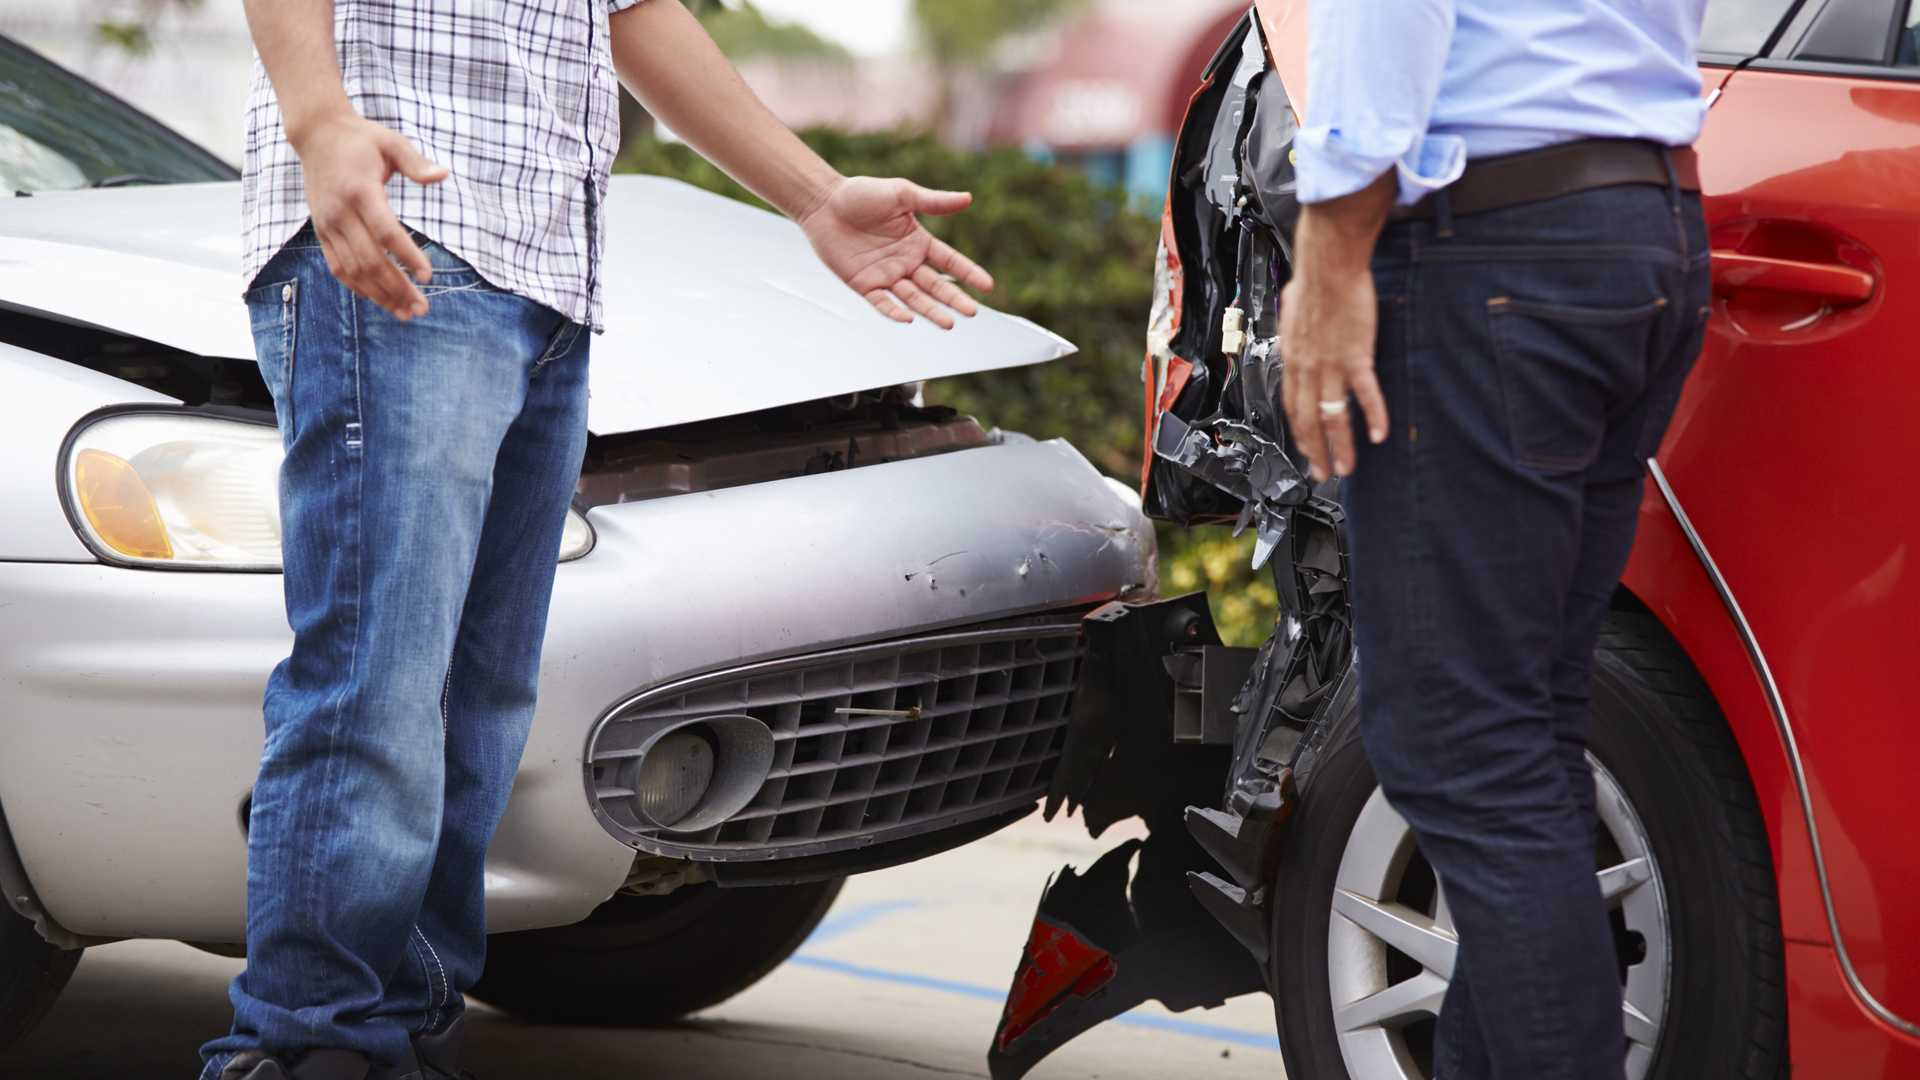 What To Know About Suing After A Car Accident